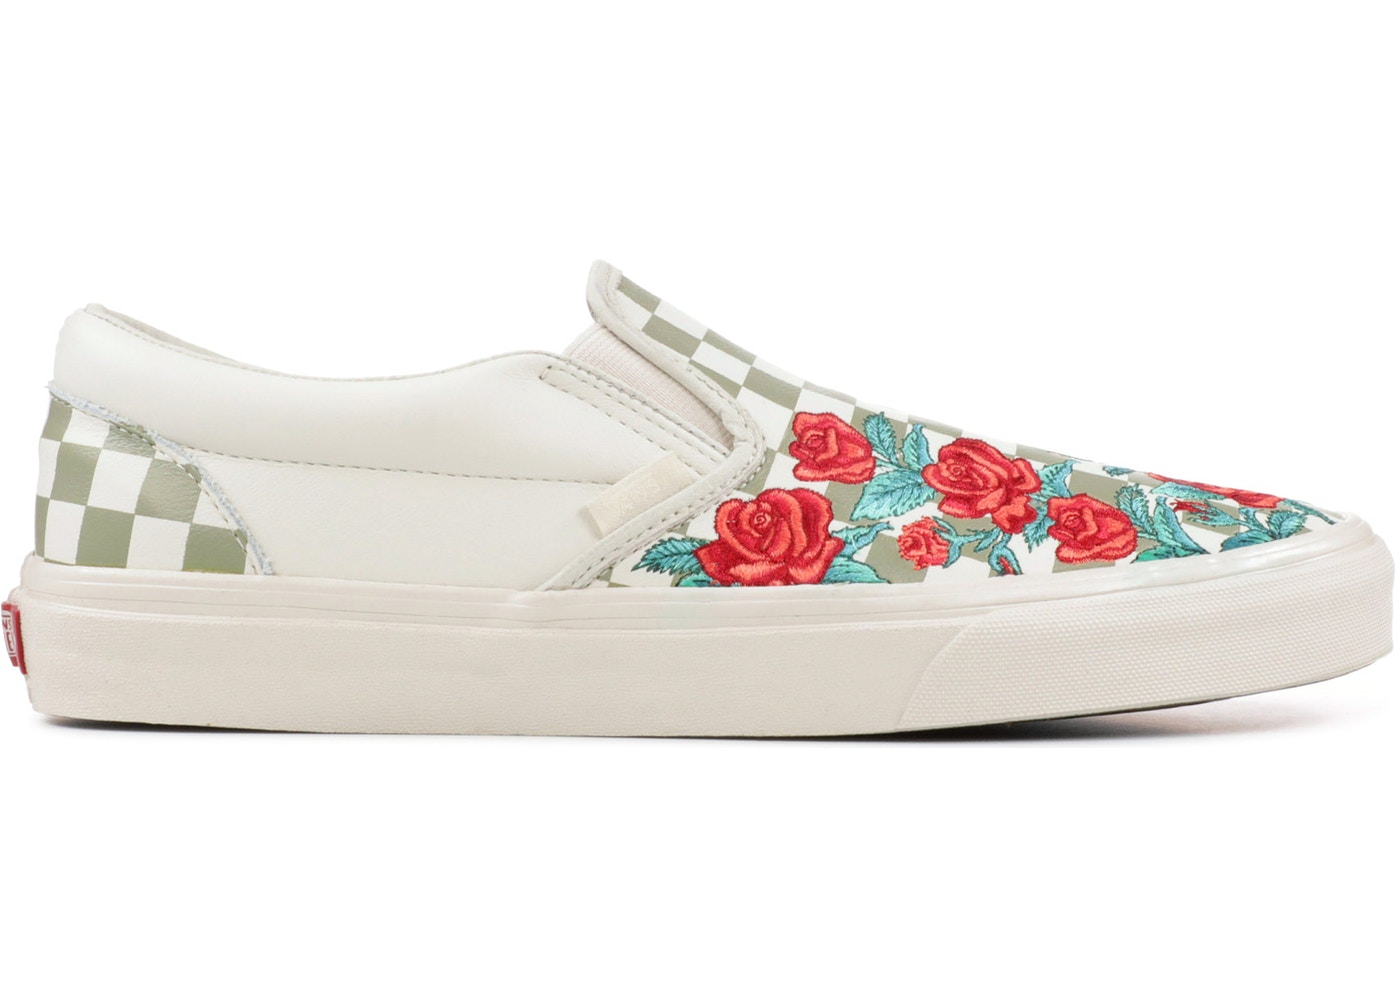 Vans Slip-On Rose Embroidery - VN0A38F8QF9